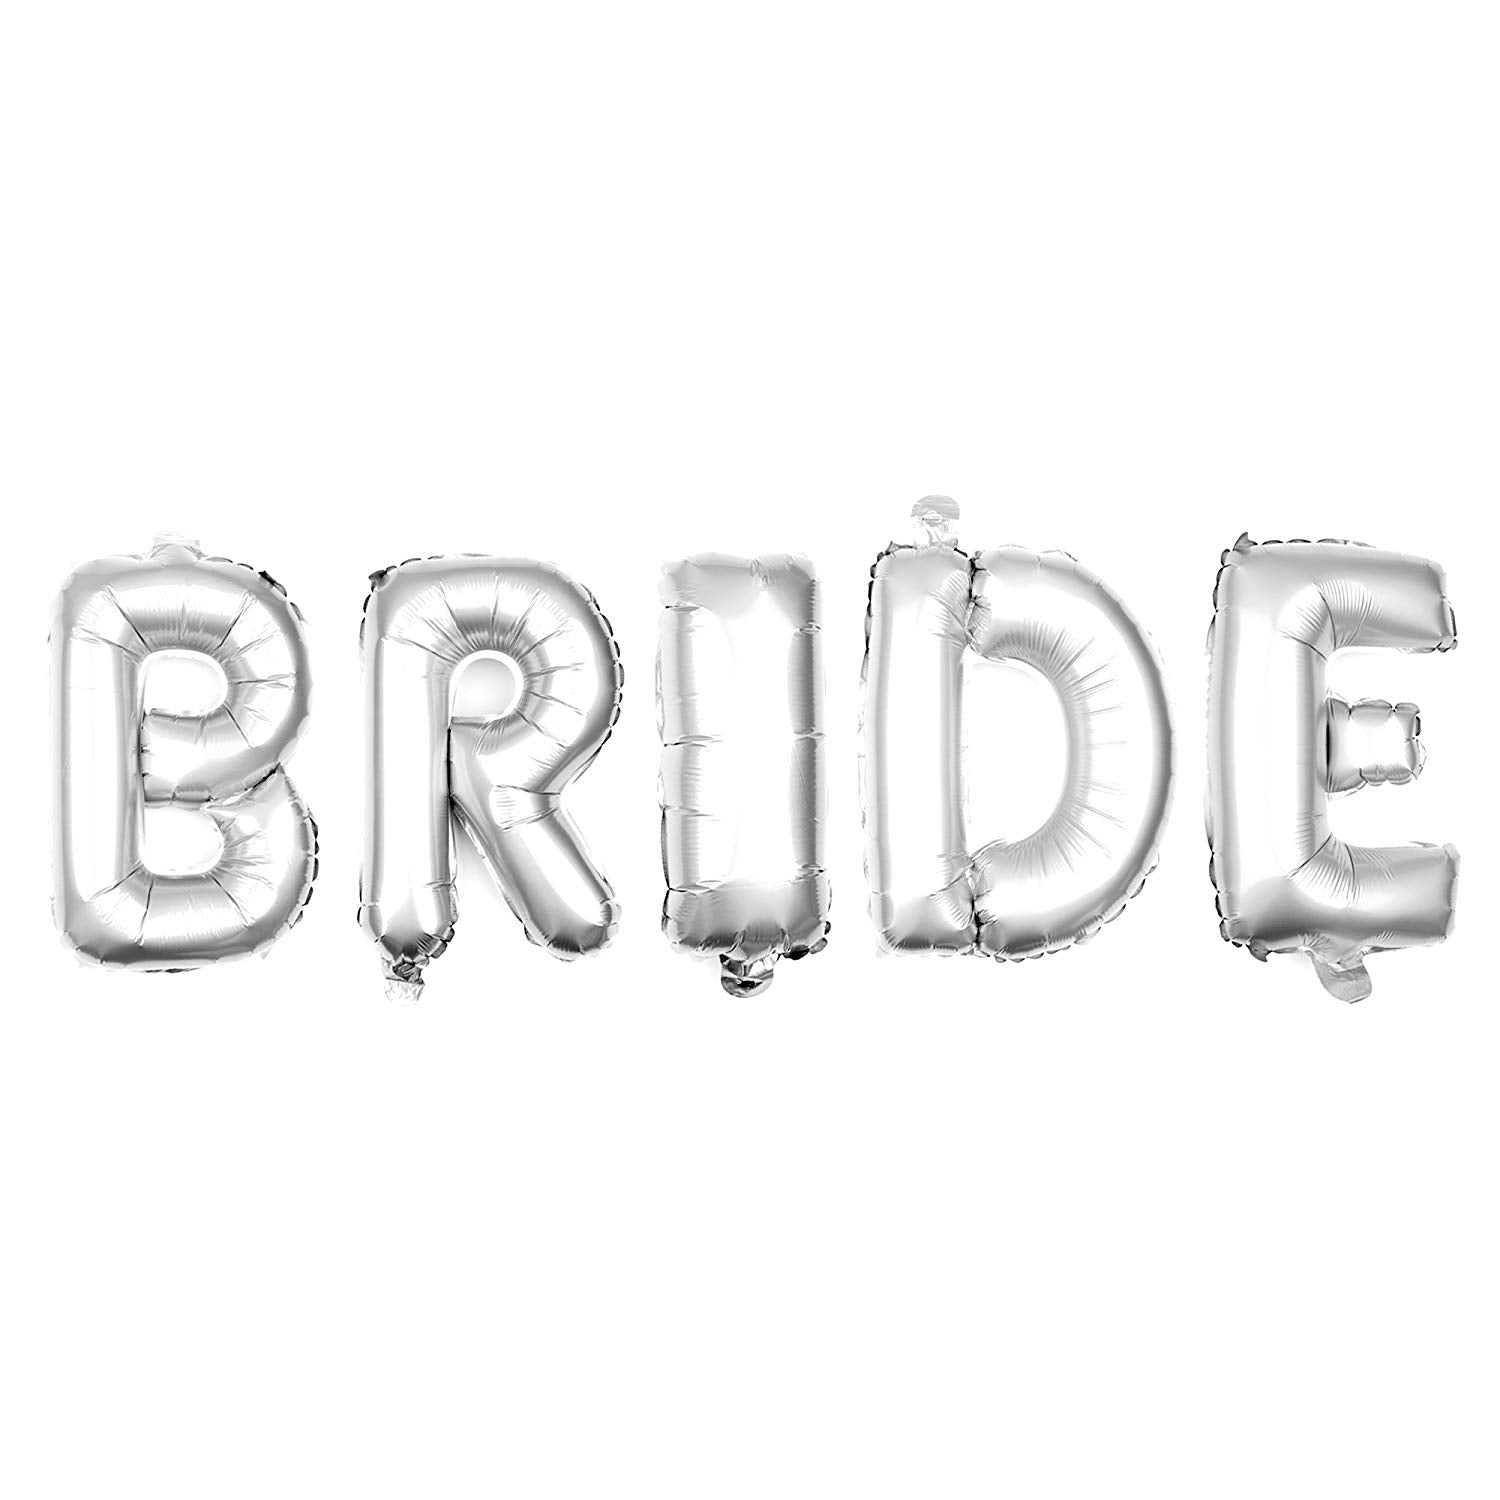 BRIDE Letter Balloons - 35 Inch Silver